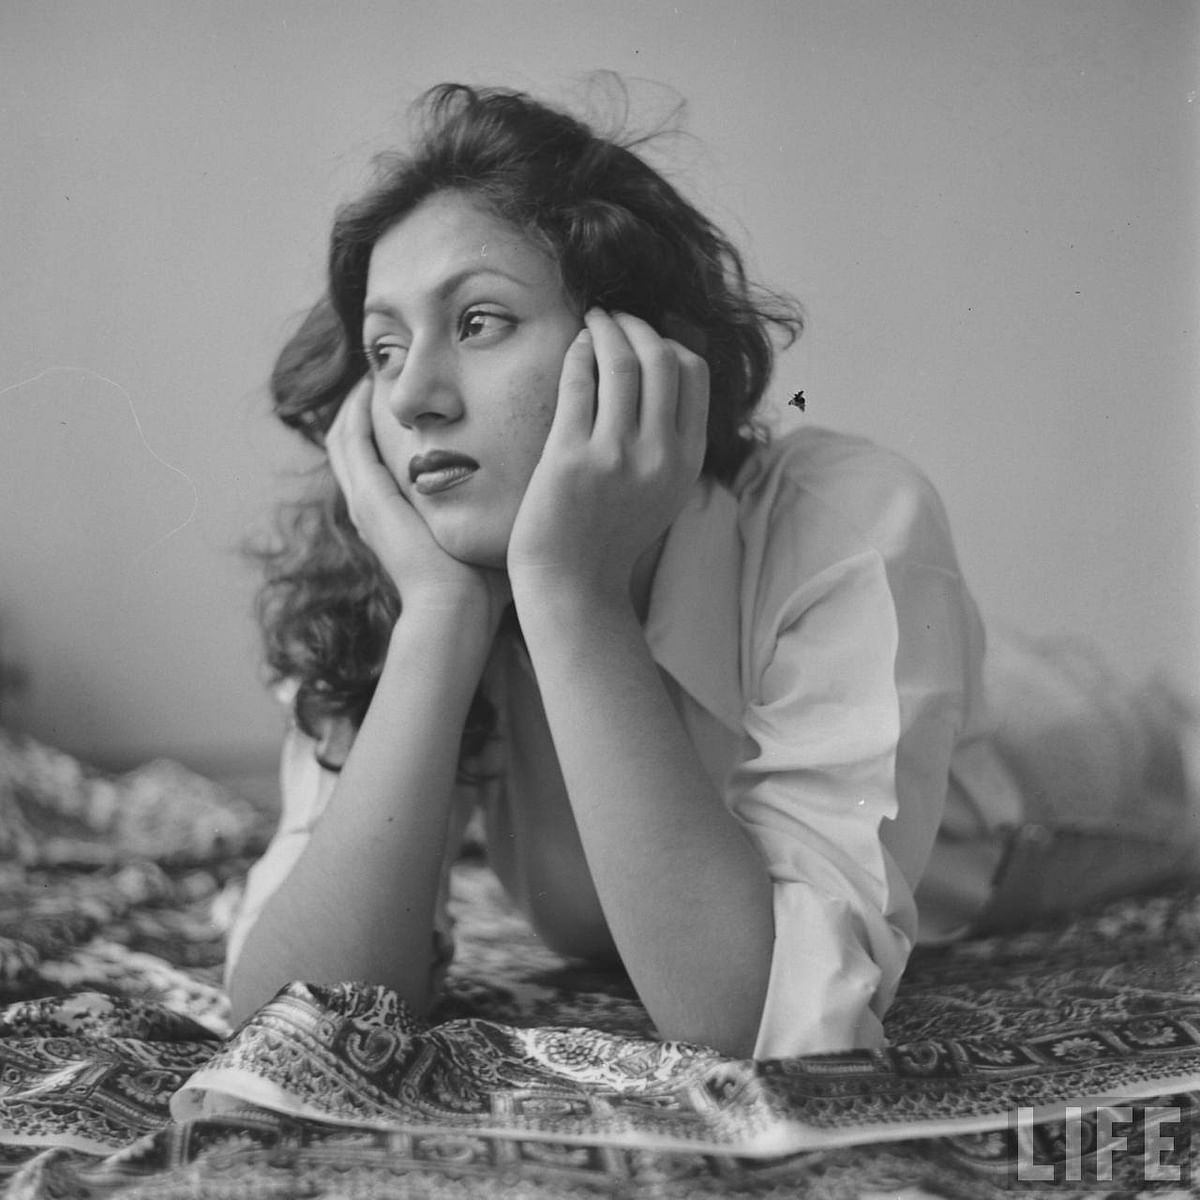 Madhubala's fan following among the millennials is incomparable.